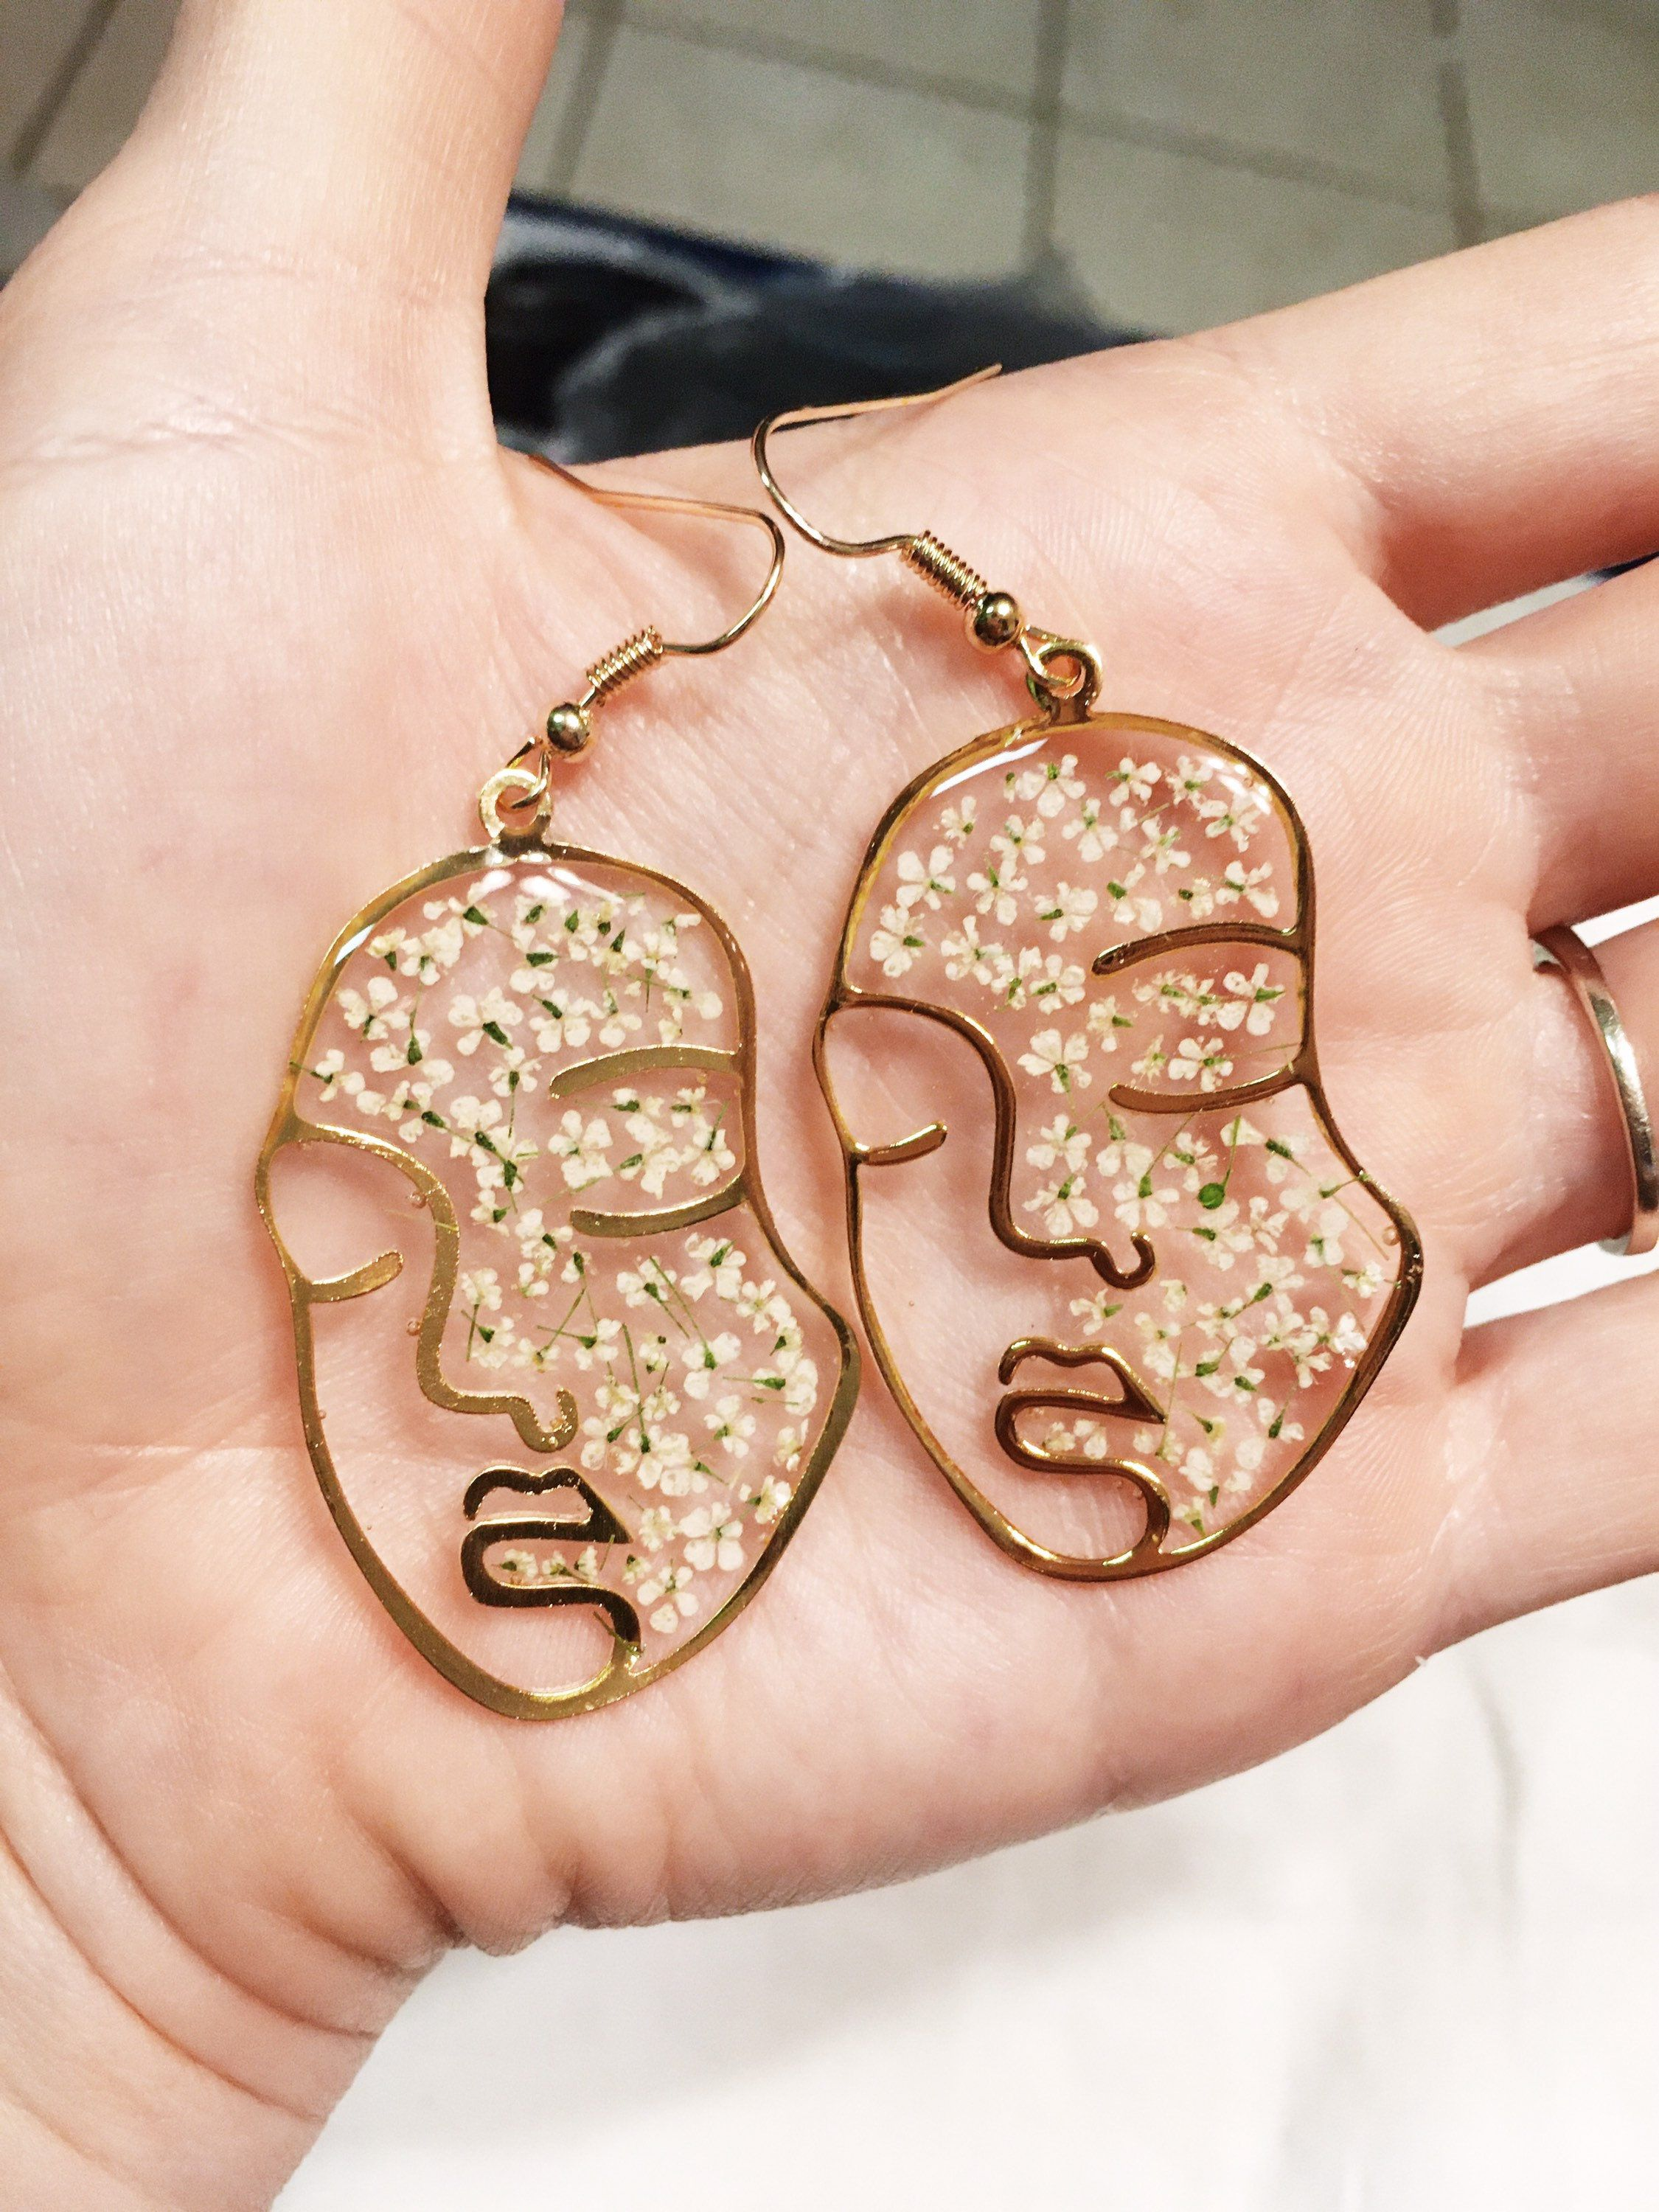 24k gold plated face earrings women, queen anne's lace real pressed flowers, botanical earrings, friend gift jewelry, resin jewelry